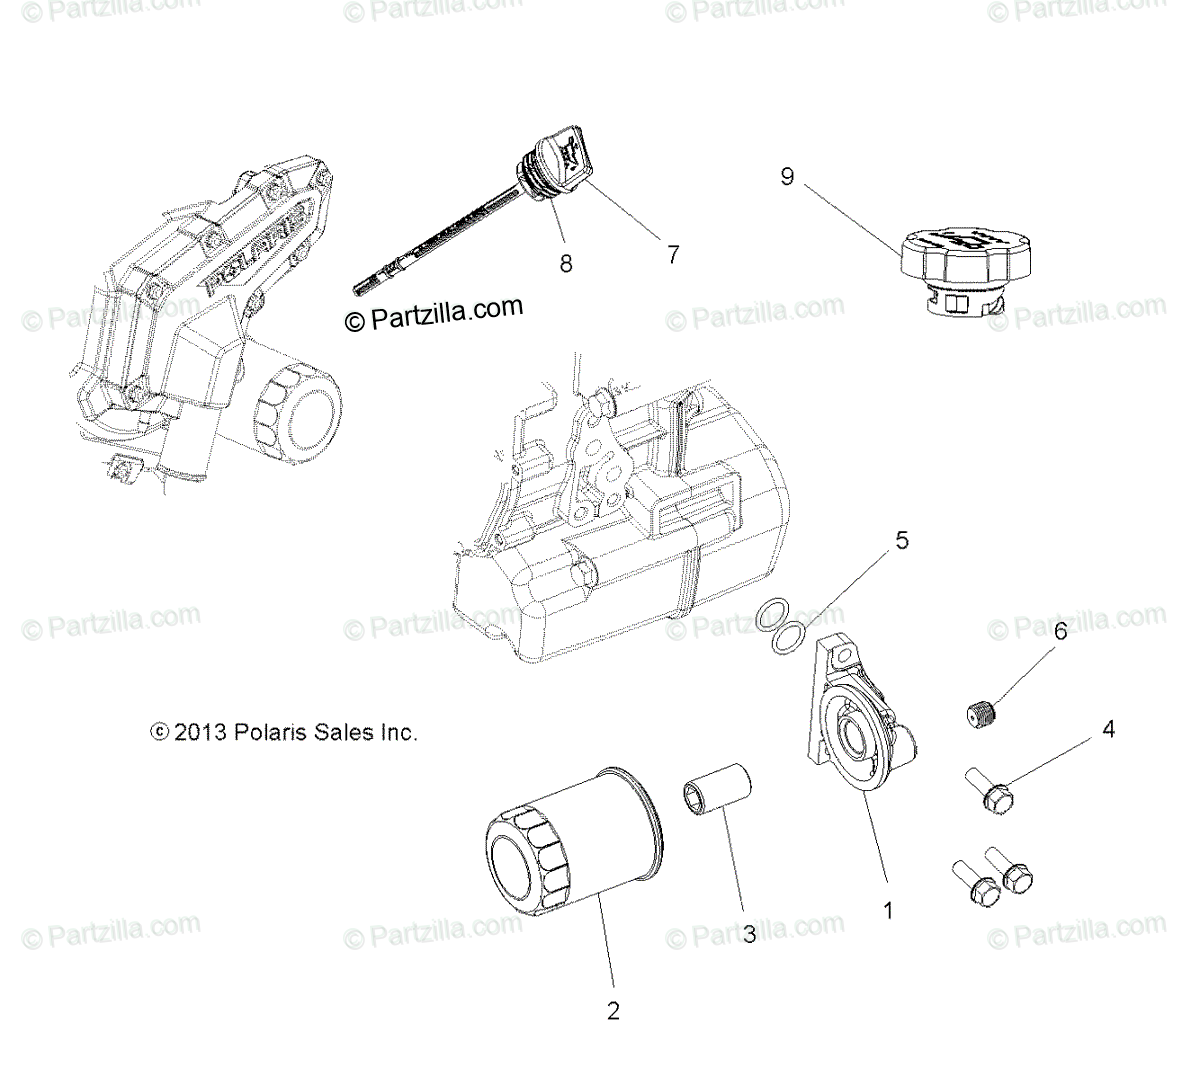 Polaris Side By Side Oem Parts Diagram For Engine